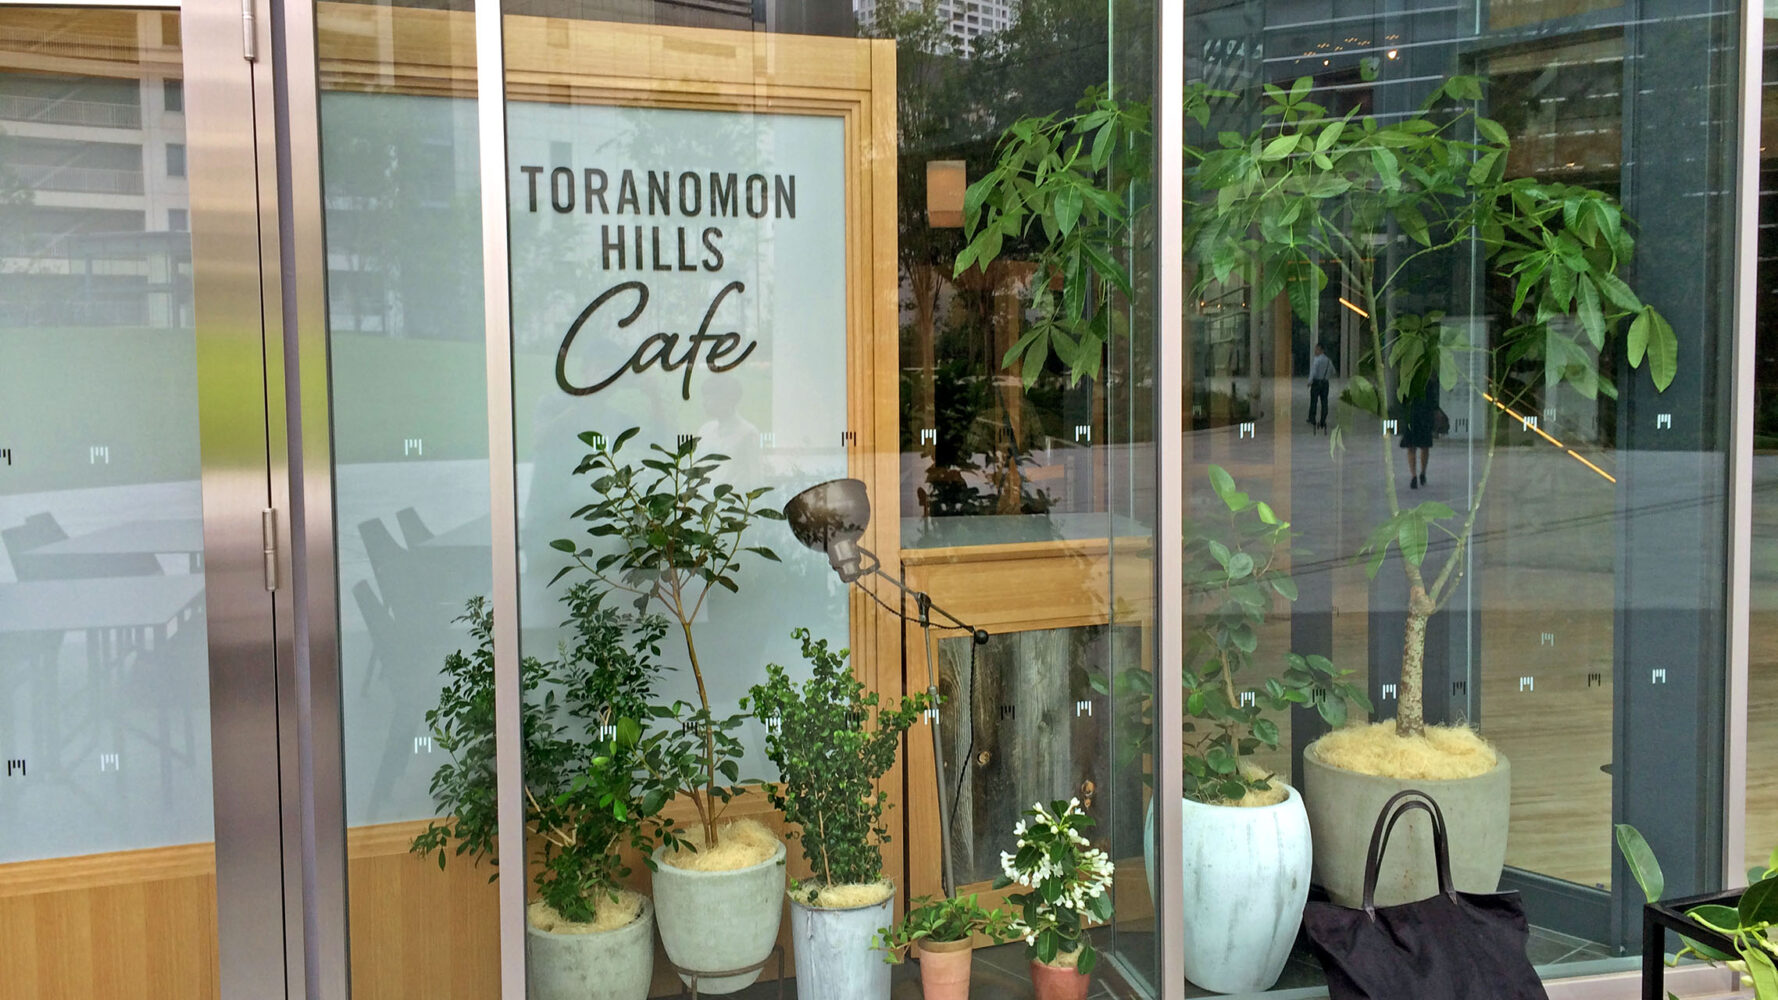 TORANOMON HILLS Cafe 事例画像3